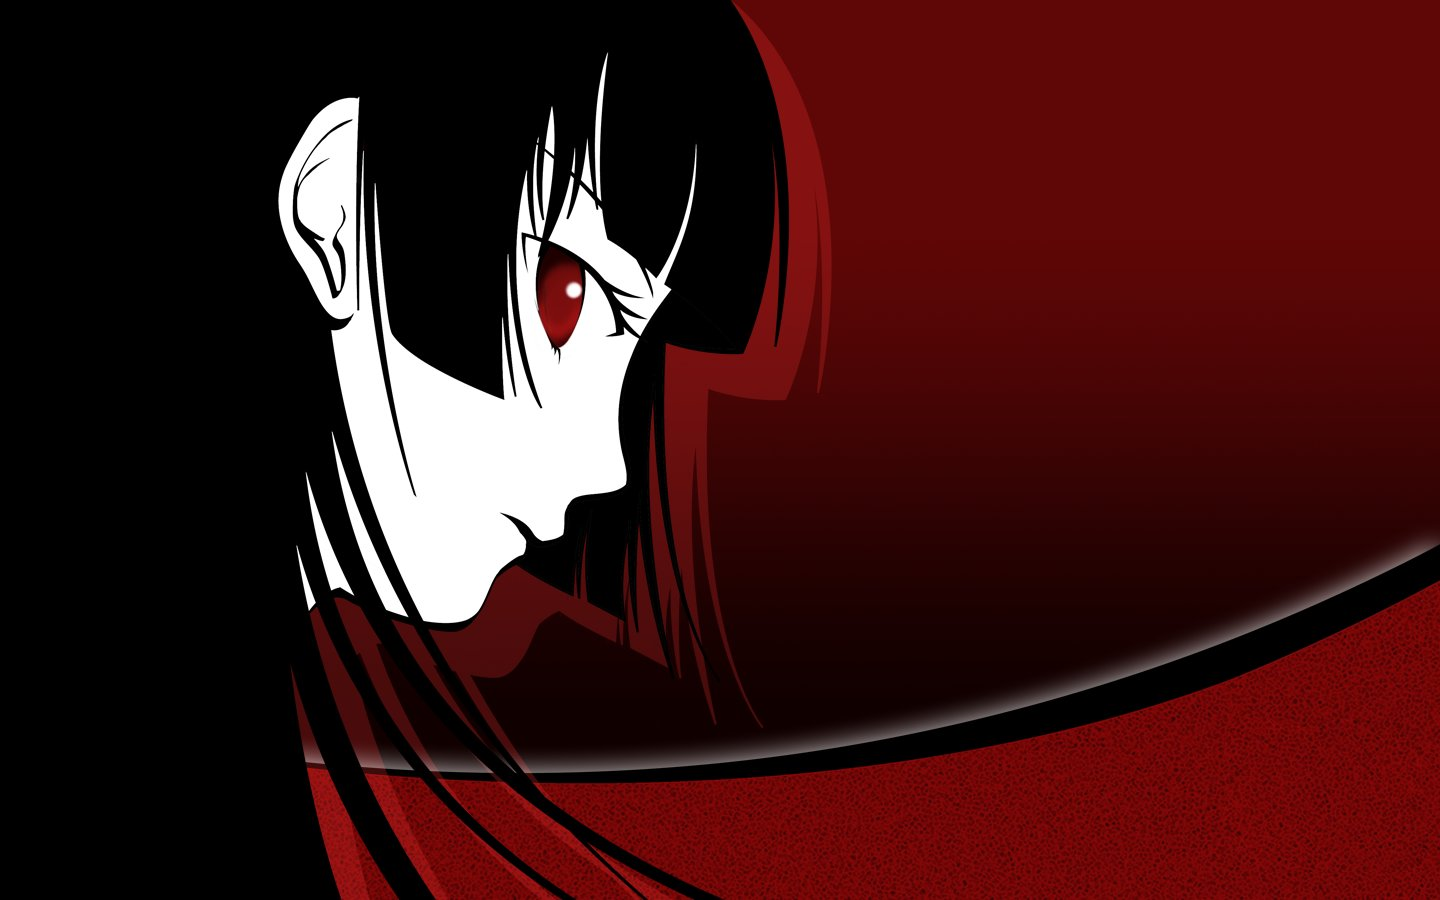 Awesome Jigoku Shojo free background ID:353632 for hd 1440x900 desktop